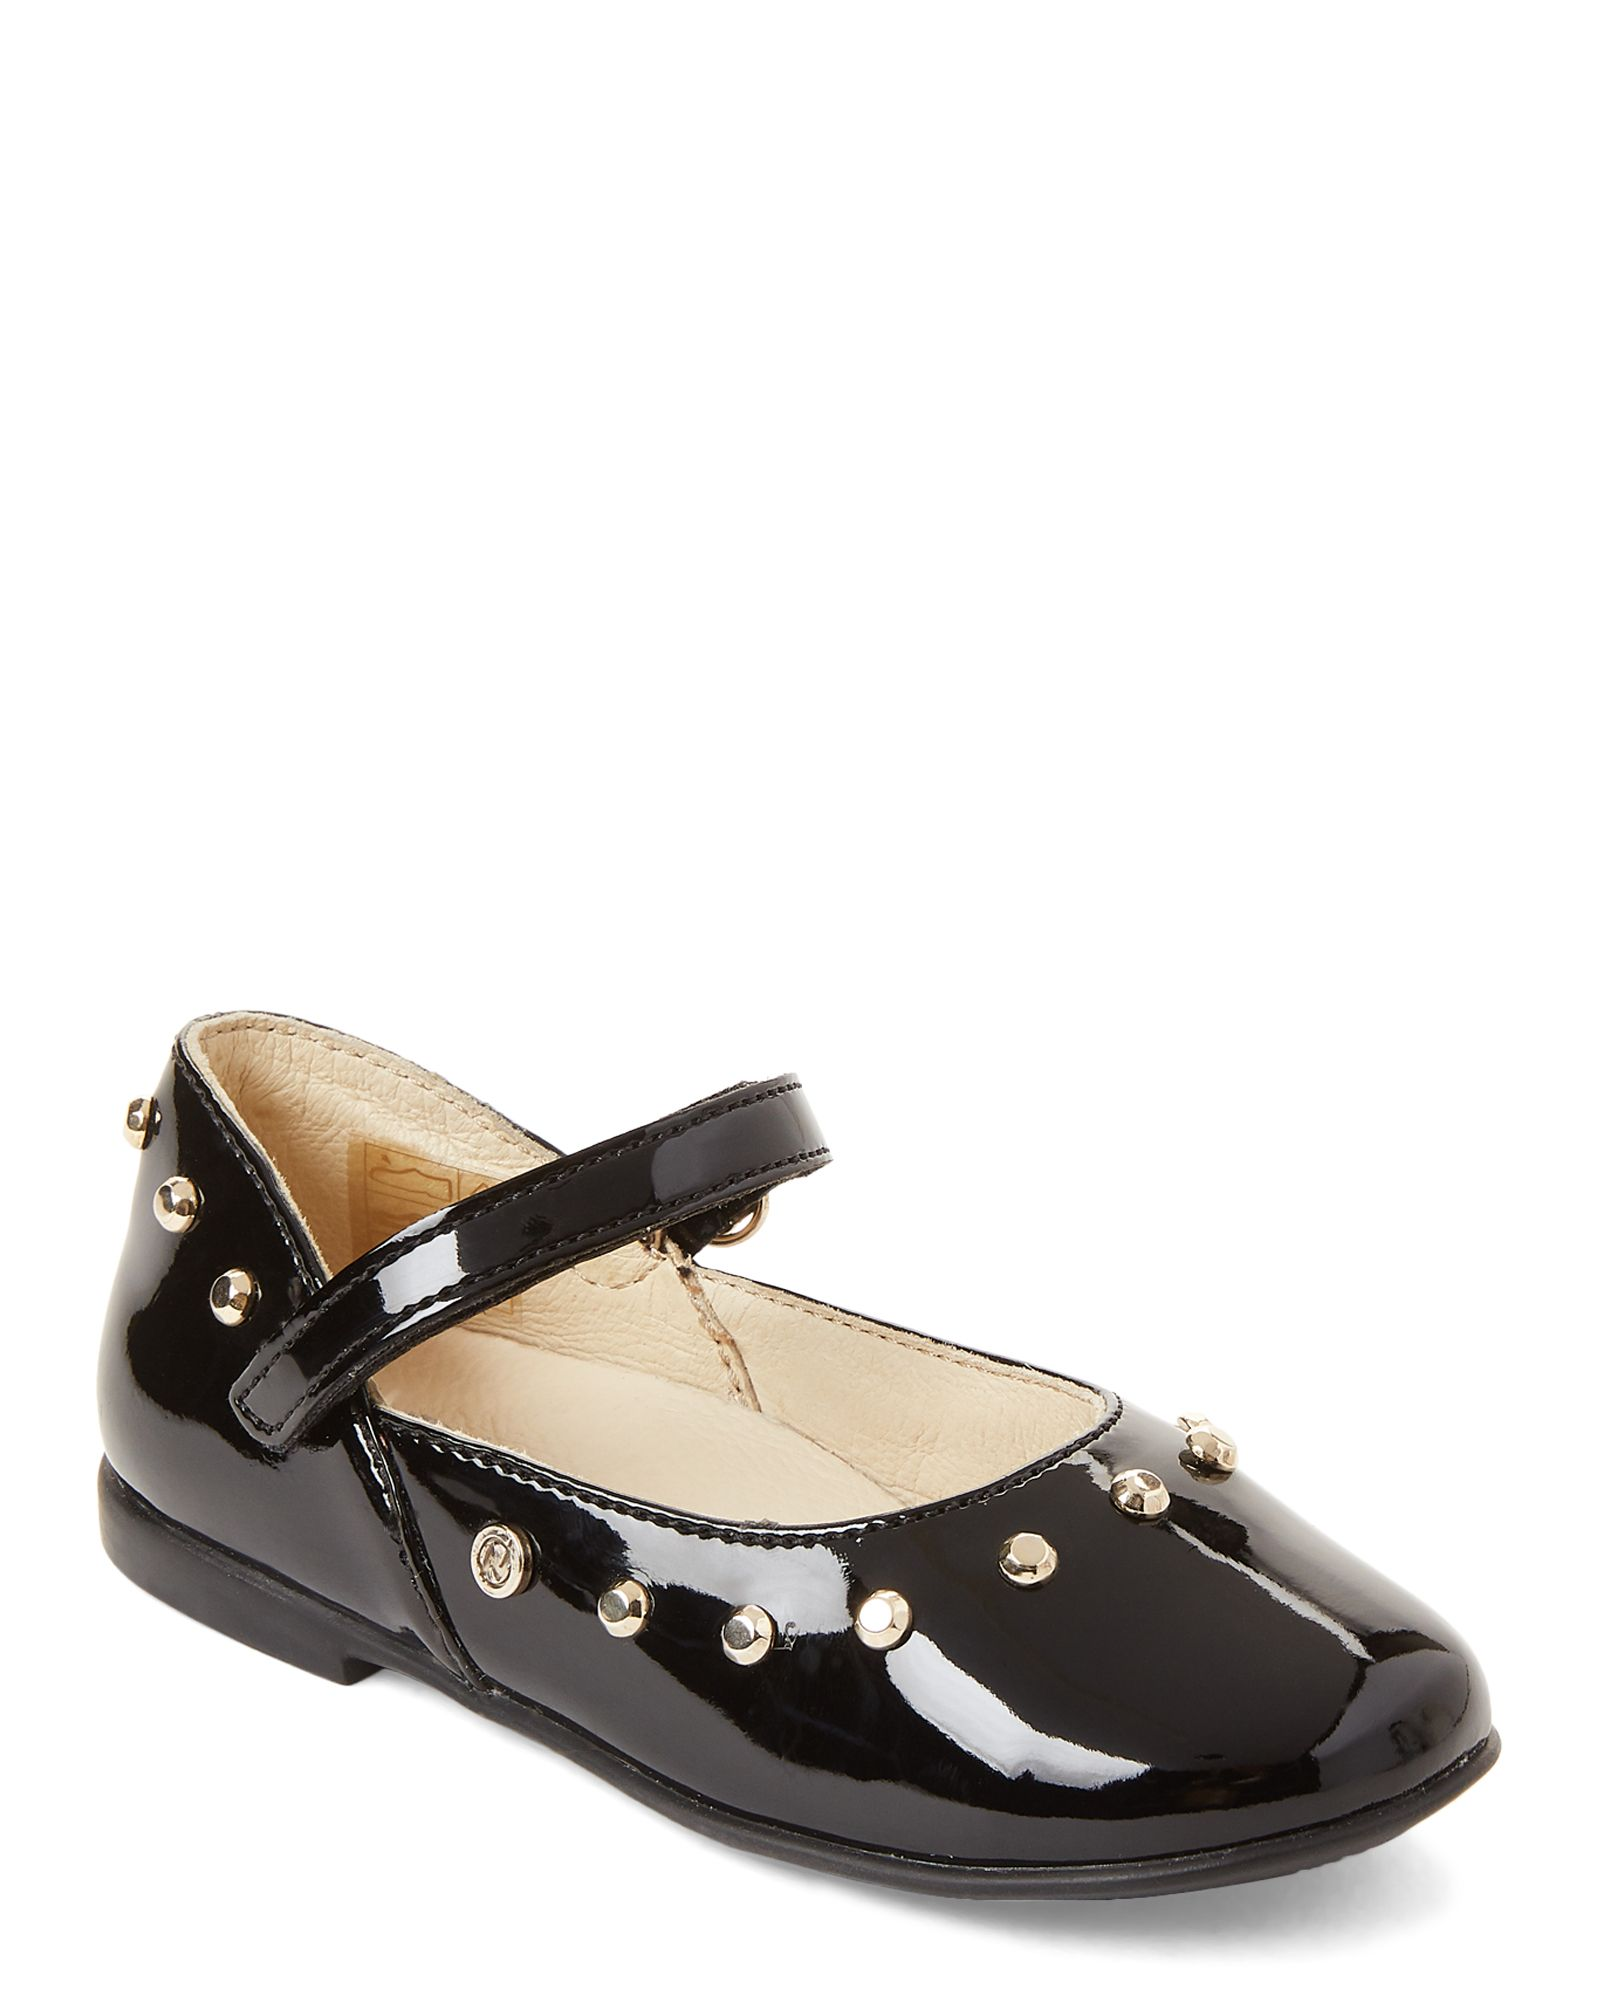 wholesale sales differently size 40 Naturino Toddler/Kids Girls) Black Studded Mary Jane Flats ...